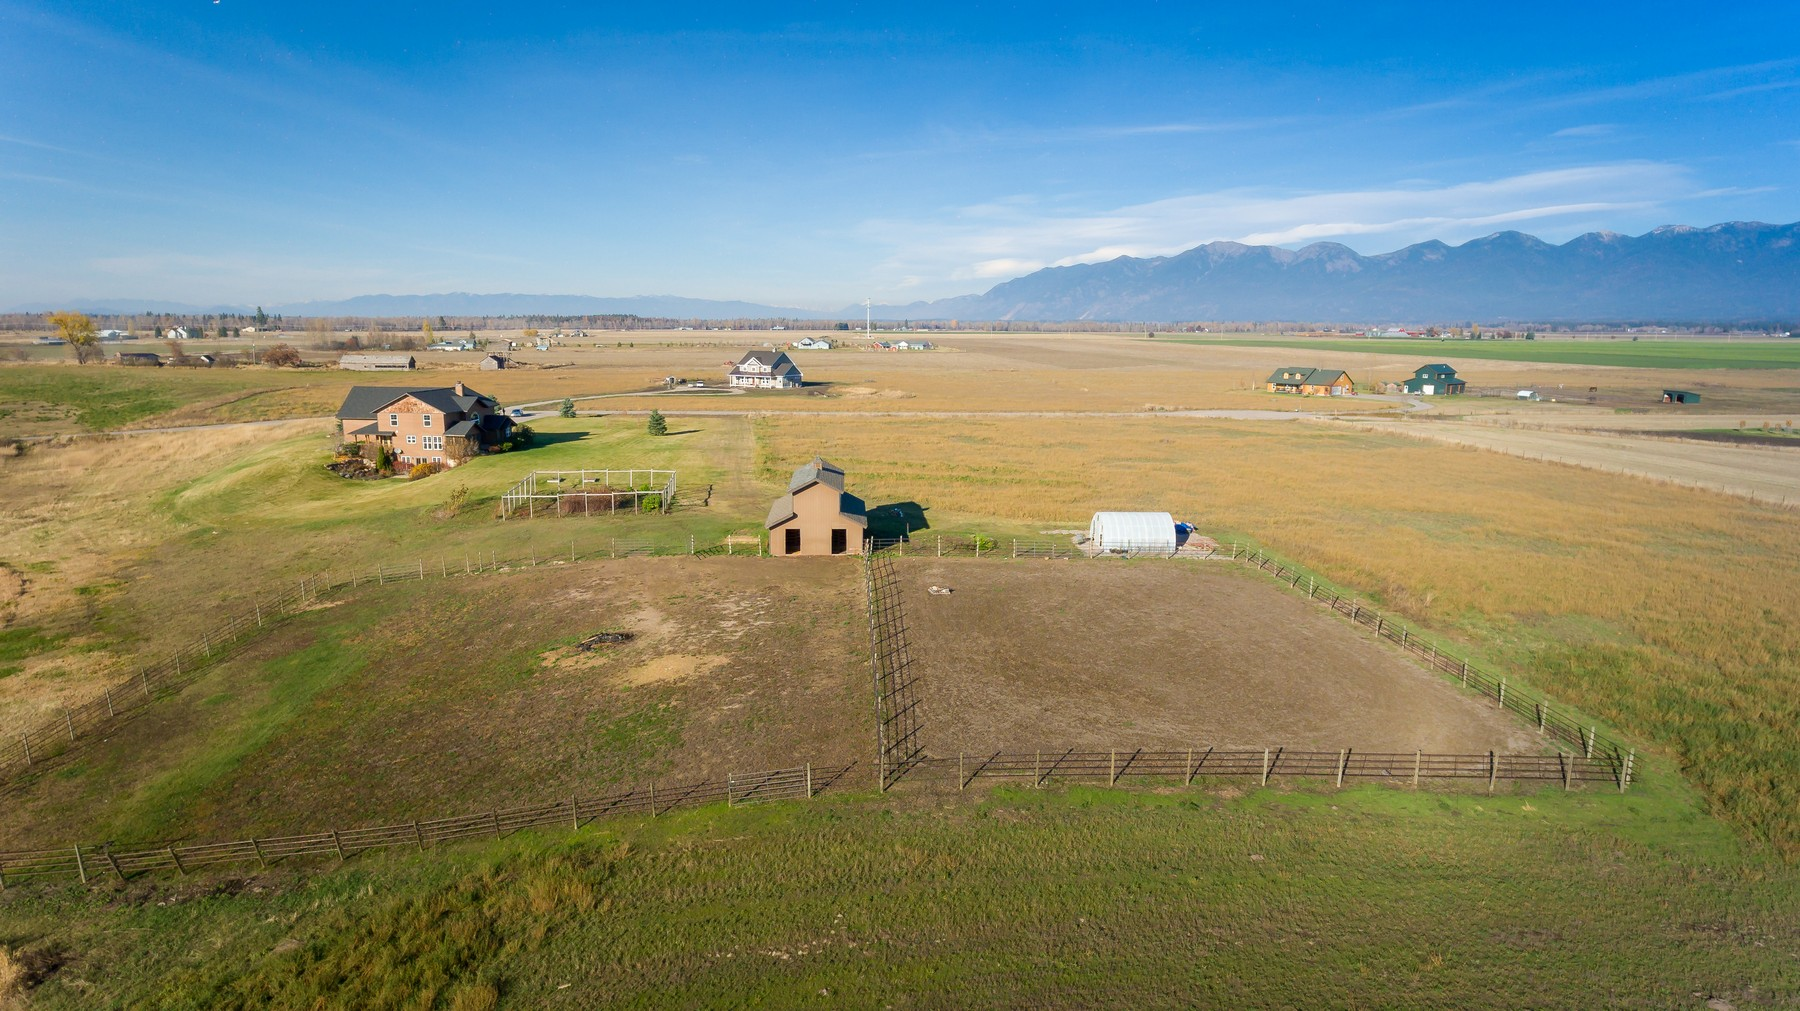 Additional photo for property listing at 122 Equestrian Lane , Kalispell, MT 59901 122  Equestrian Ln Kalispell, Montana 59901 United States